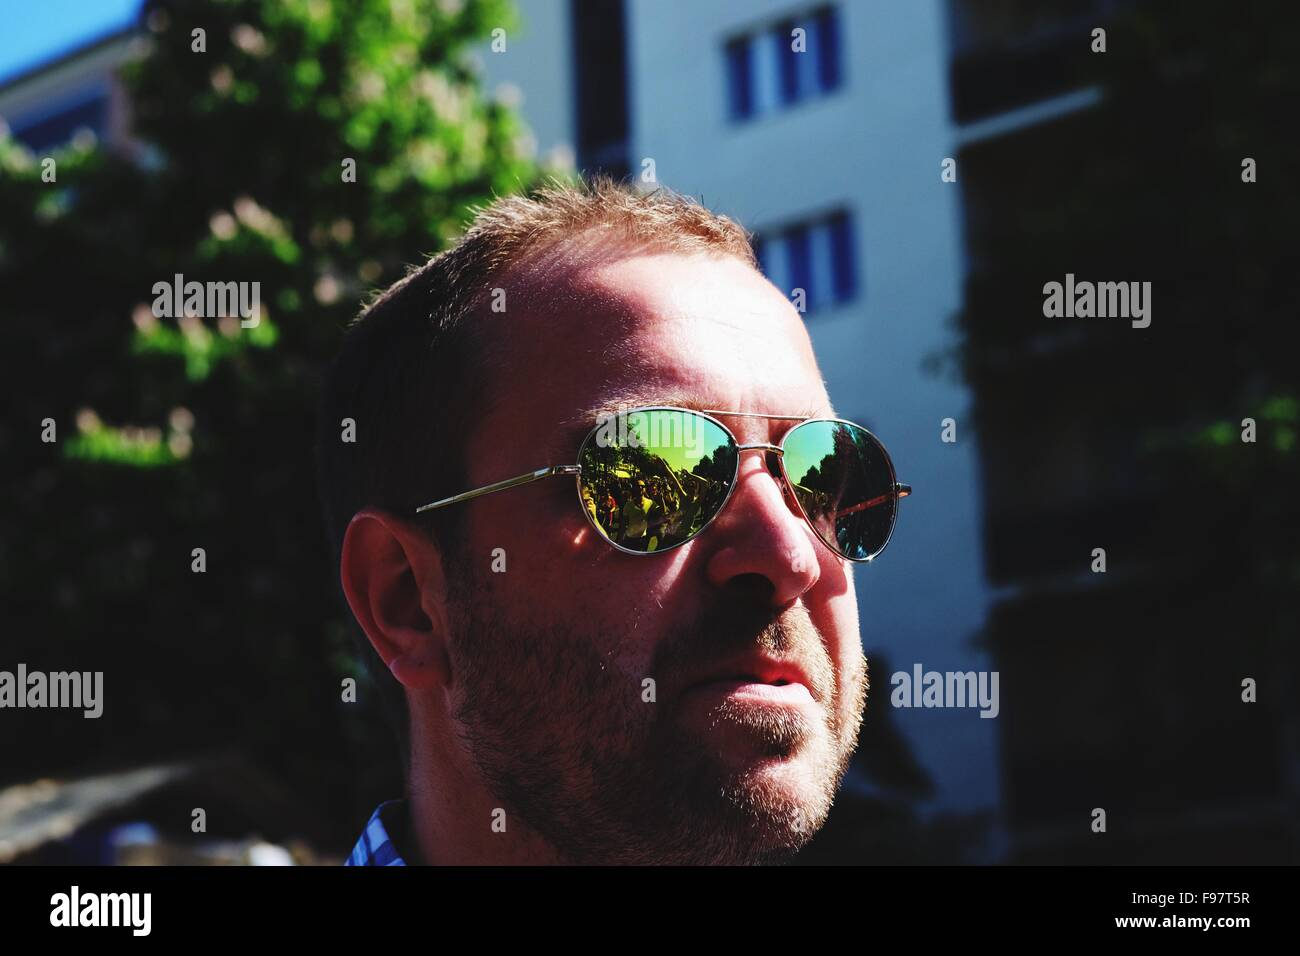 Man Wearing Sunglasses In City Against Building - Stock Image